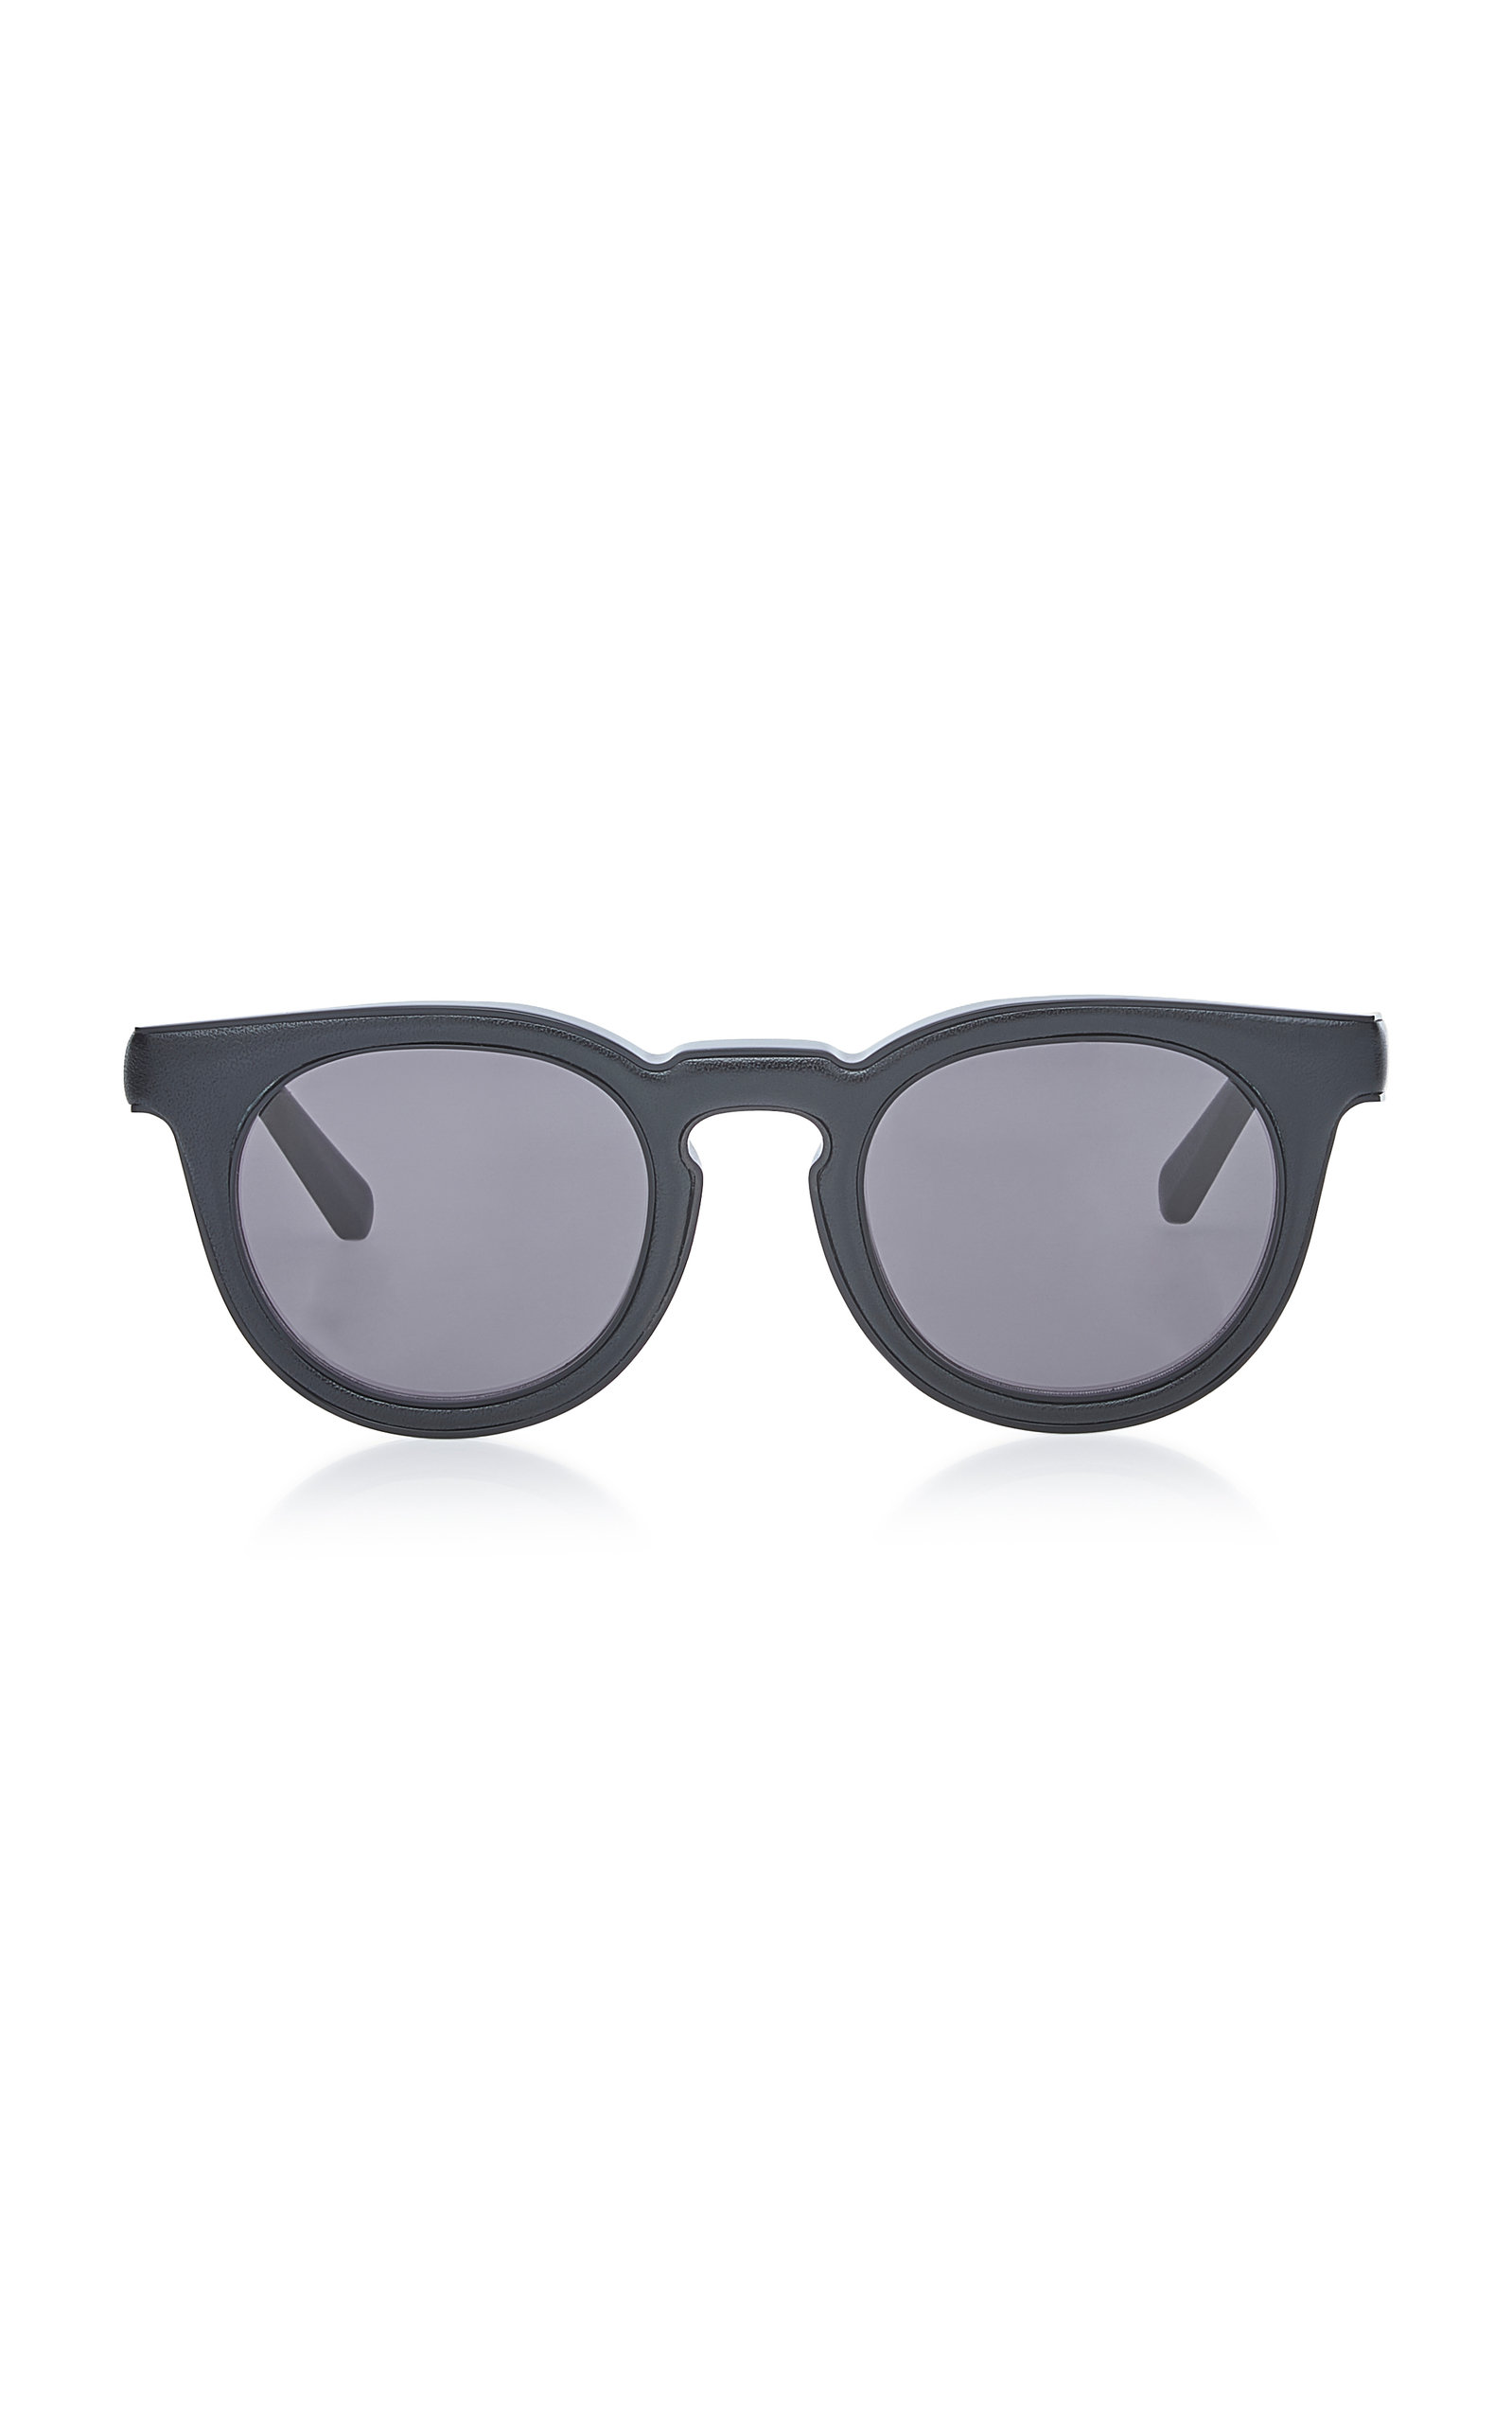 24199cb300e73 Oversized Round Acetate Sunglasses by Loewe Sunglasses